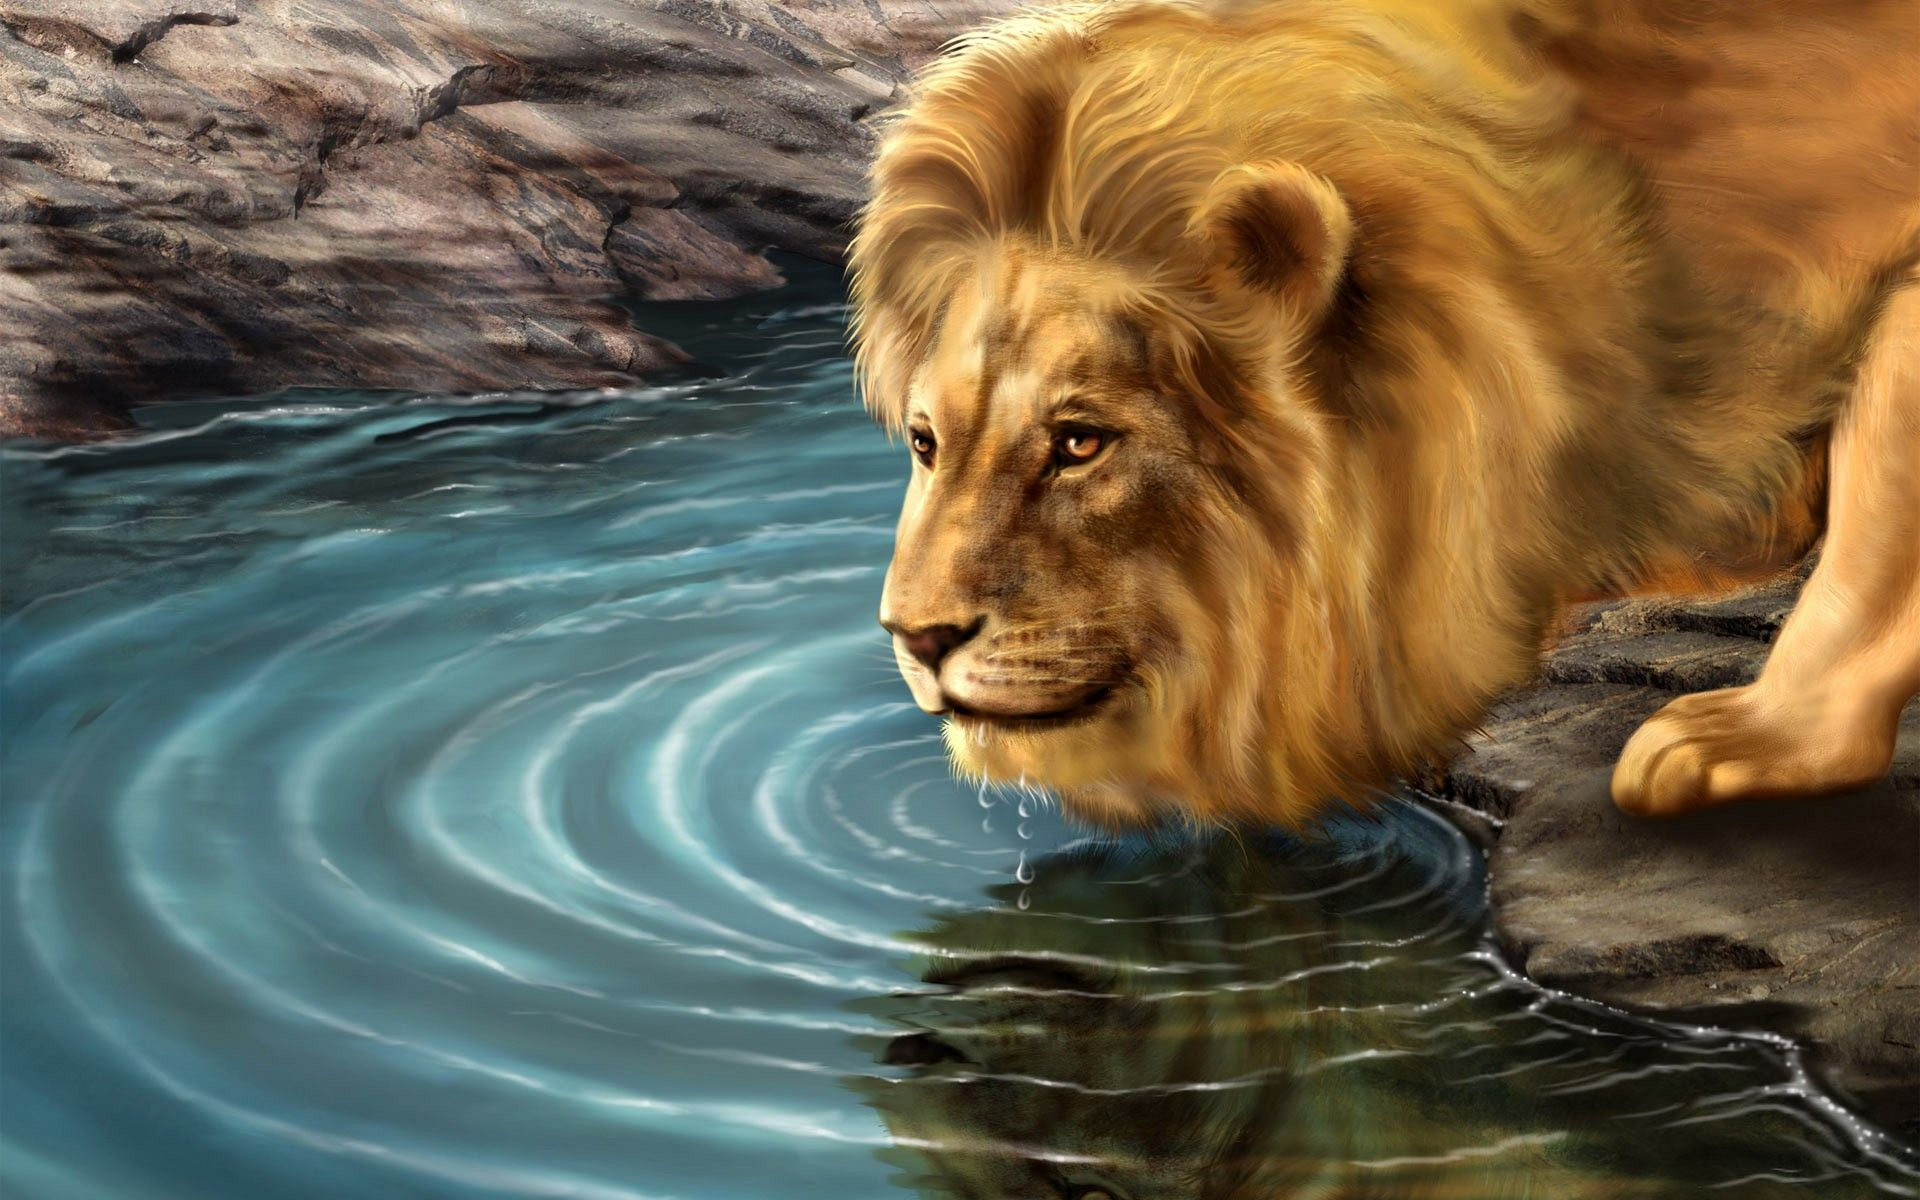 Lion lion water drinking hd wallpapers.jpg â World HD